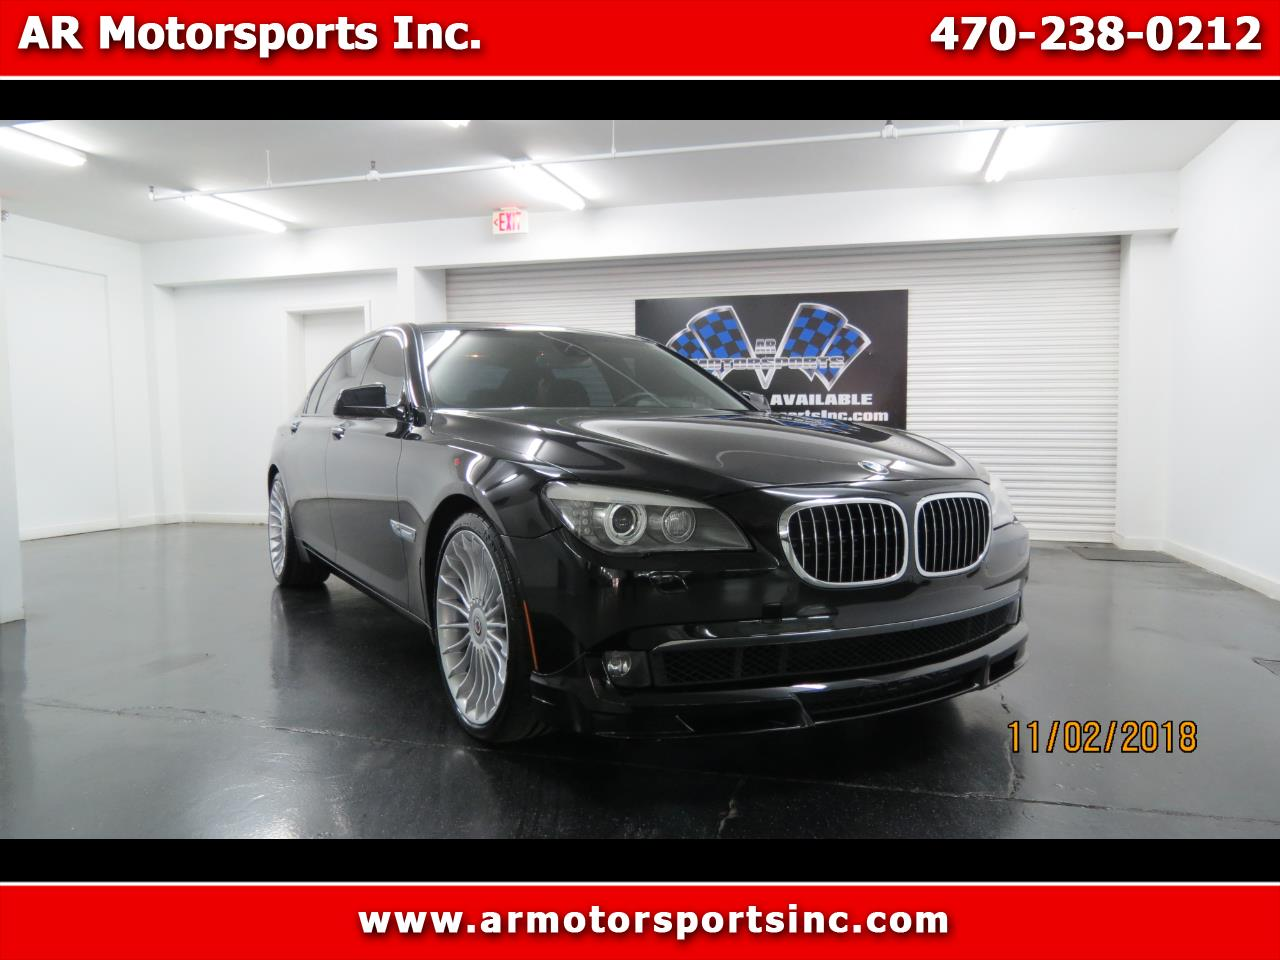 2012 BMW 7-Series Alpina B7 xDrive